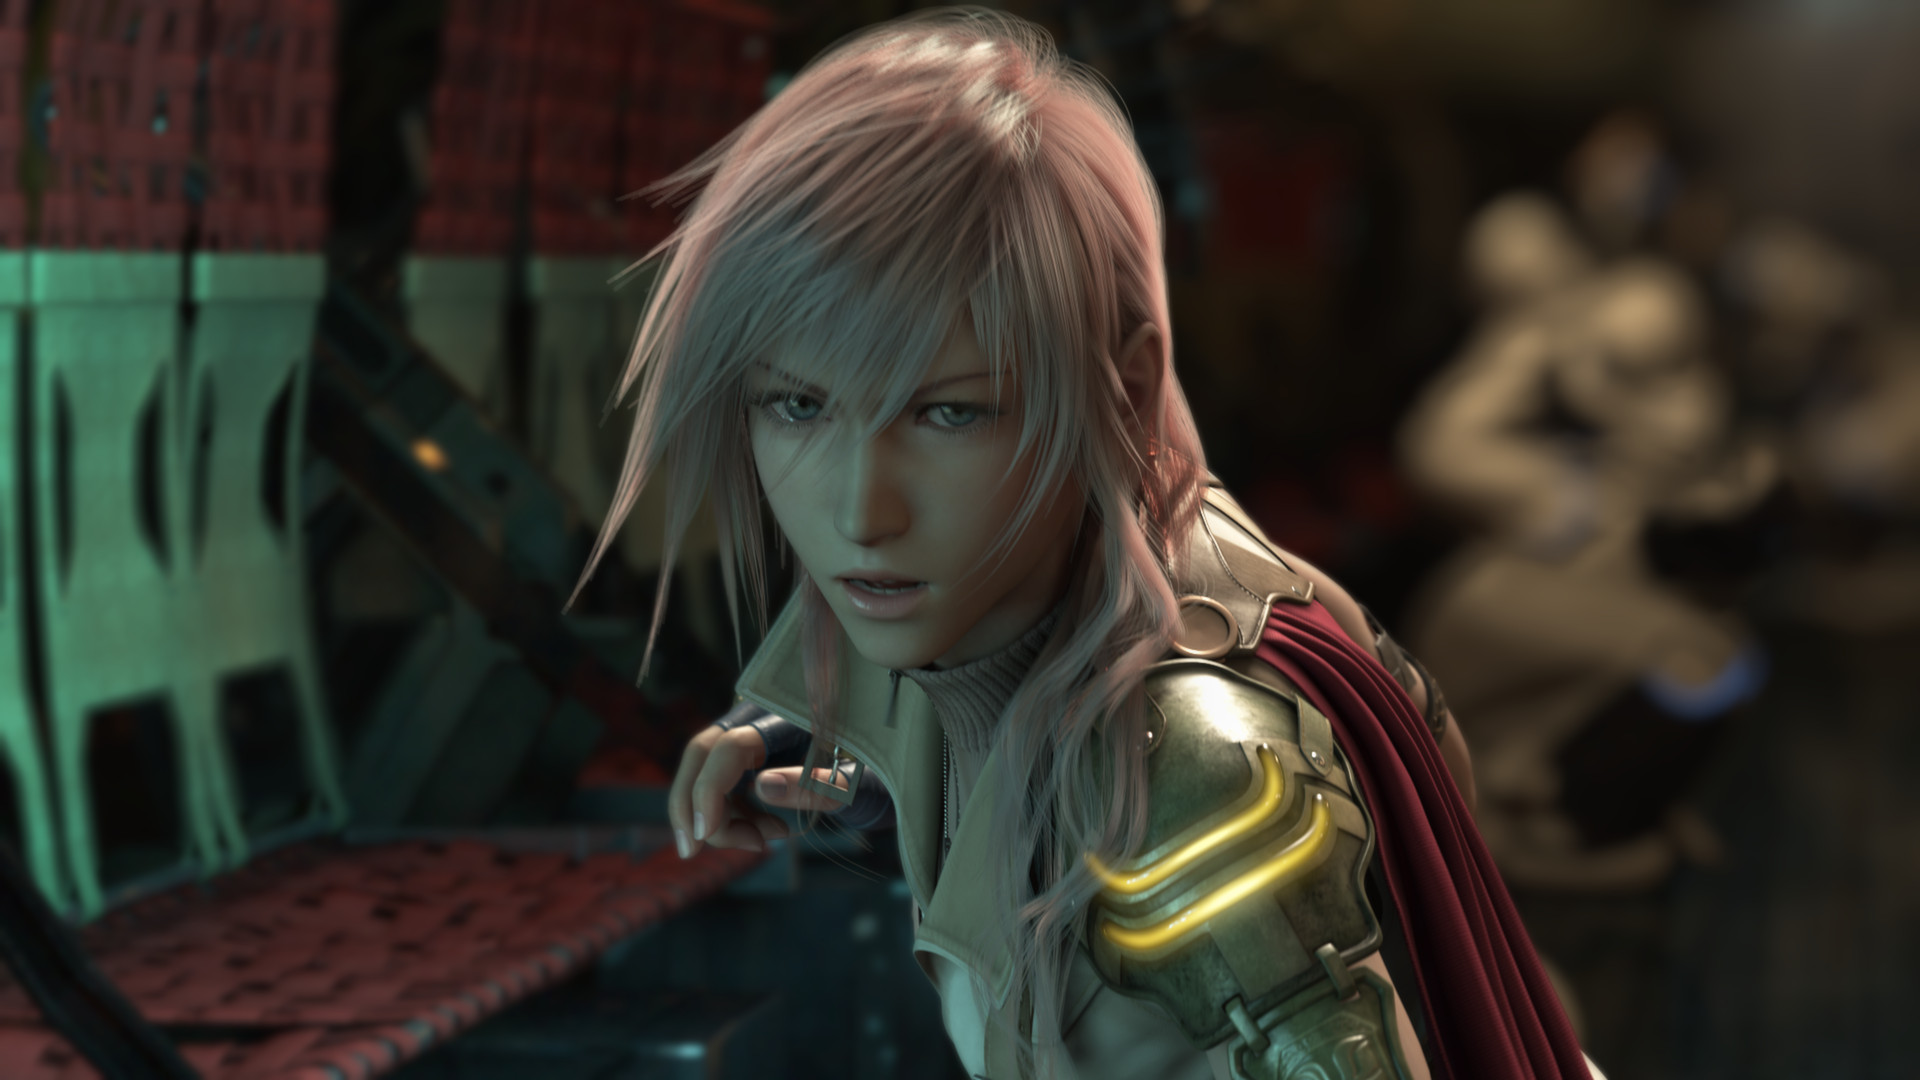 Final Fantasy XIII Multilenguaje ESPAÑOL PC (RELOADED) + Update 3 (CPY) 4